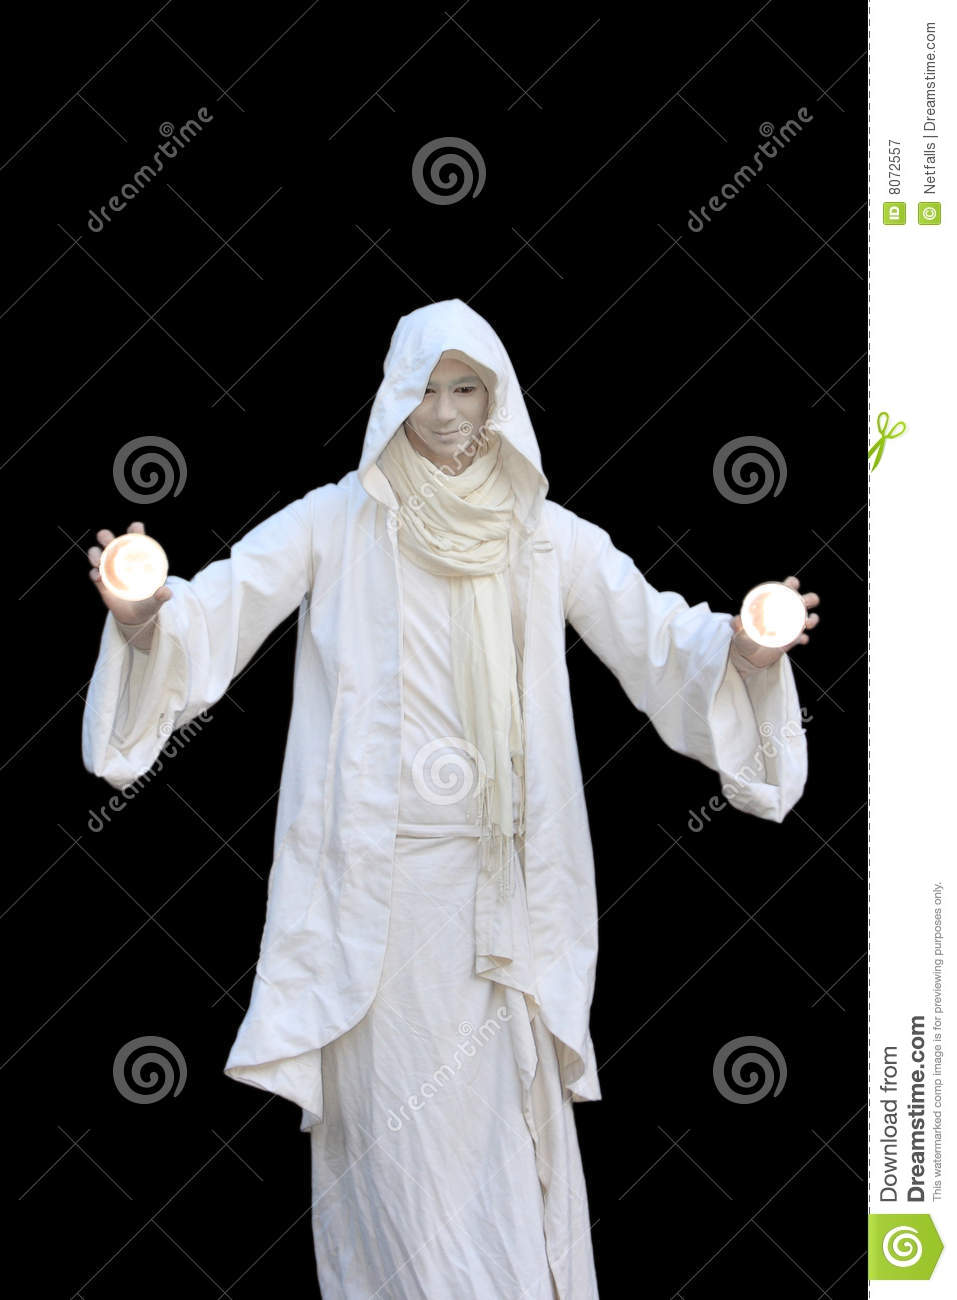 white wizard royalty free stock photography